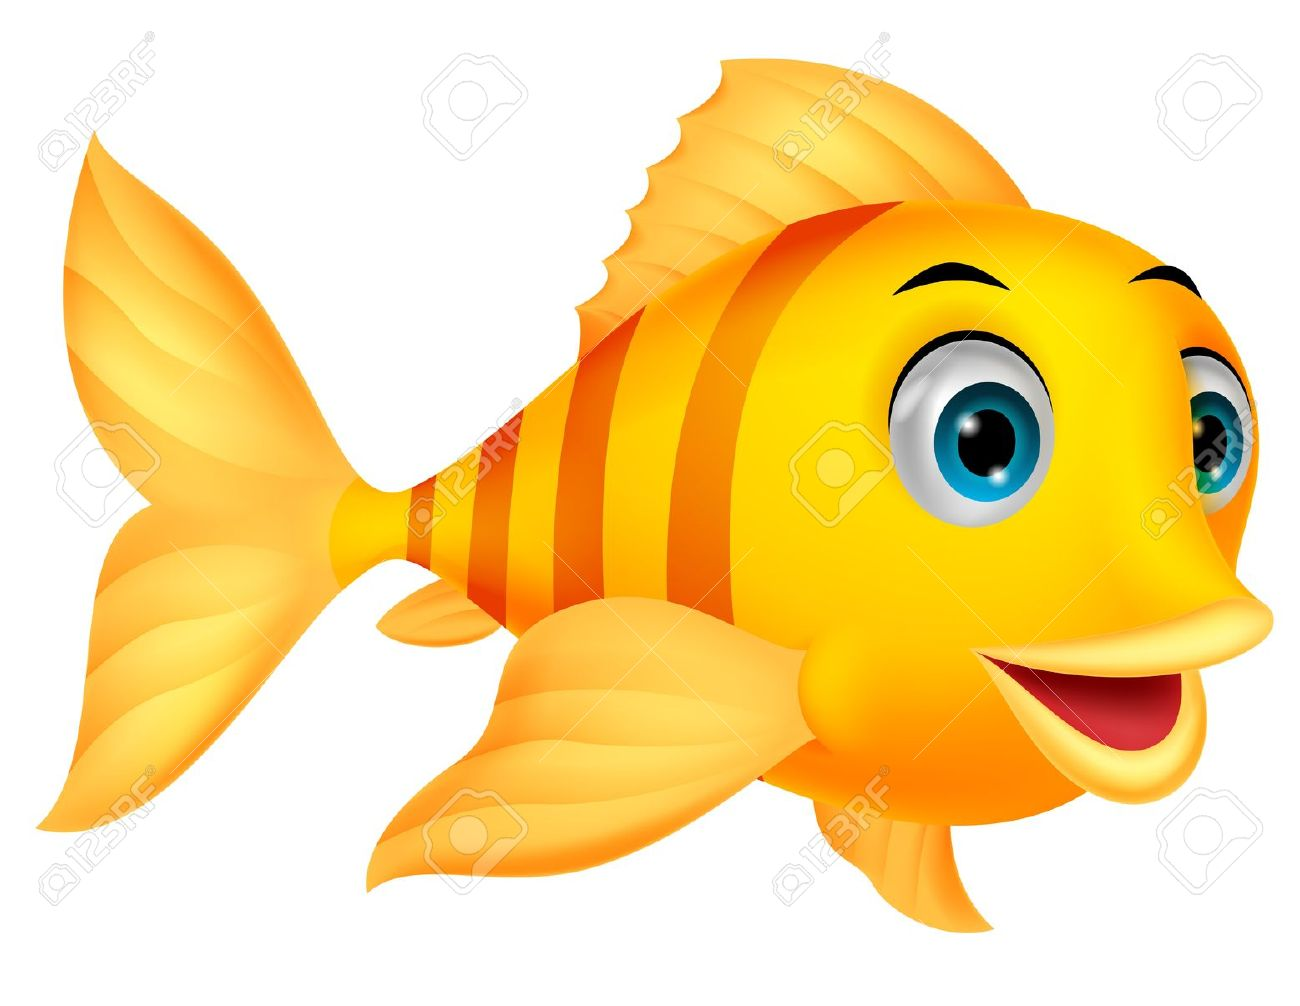 fish animated pictures free download best fish animated Fishing Hung Clip Art Shark Fishing Clip Art Winners